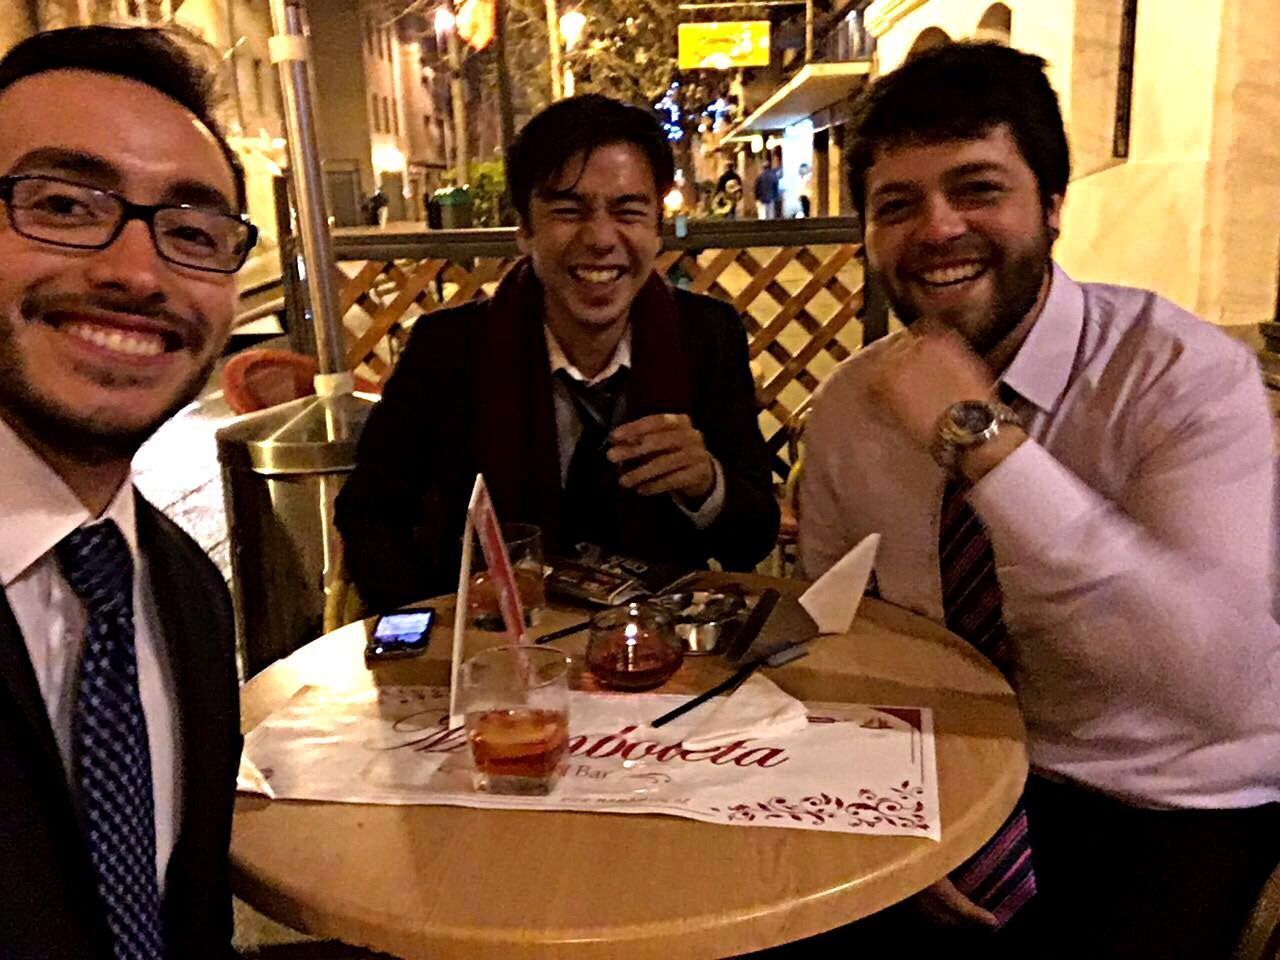 smiling, well-dressed, men, mid adult, mid adult men, food and drink, bar - drink establishment, portrait, table, friendship, indoors, cheerful, happy hour, sitting, nightlife, happiness, togetherness, looking at camera, businessman, suit, standing, business, adults only, people, adult, only men, day